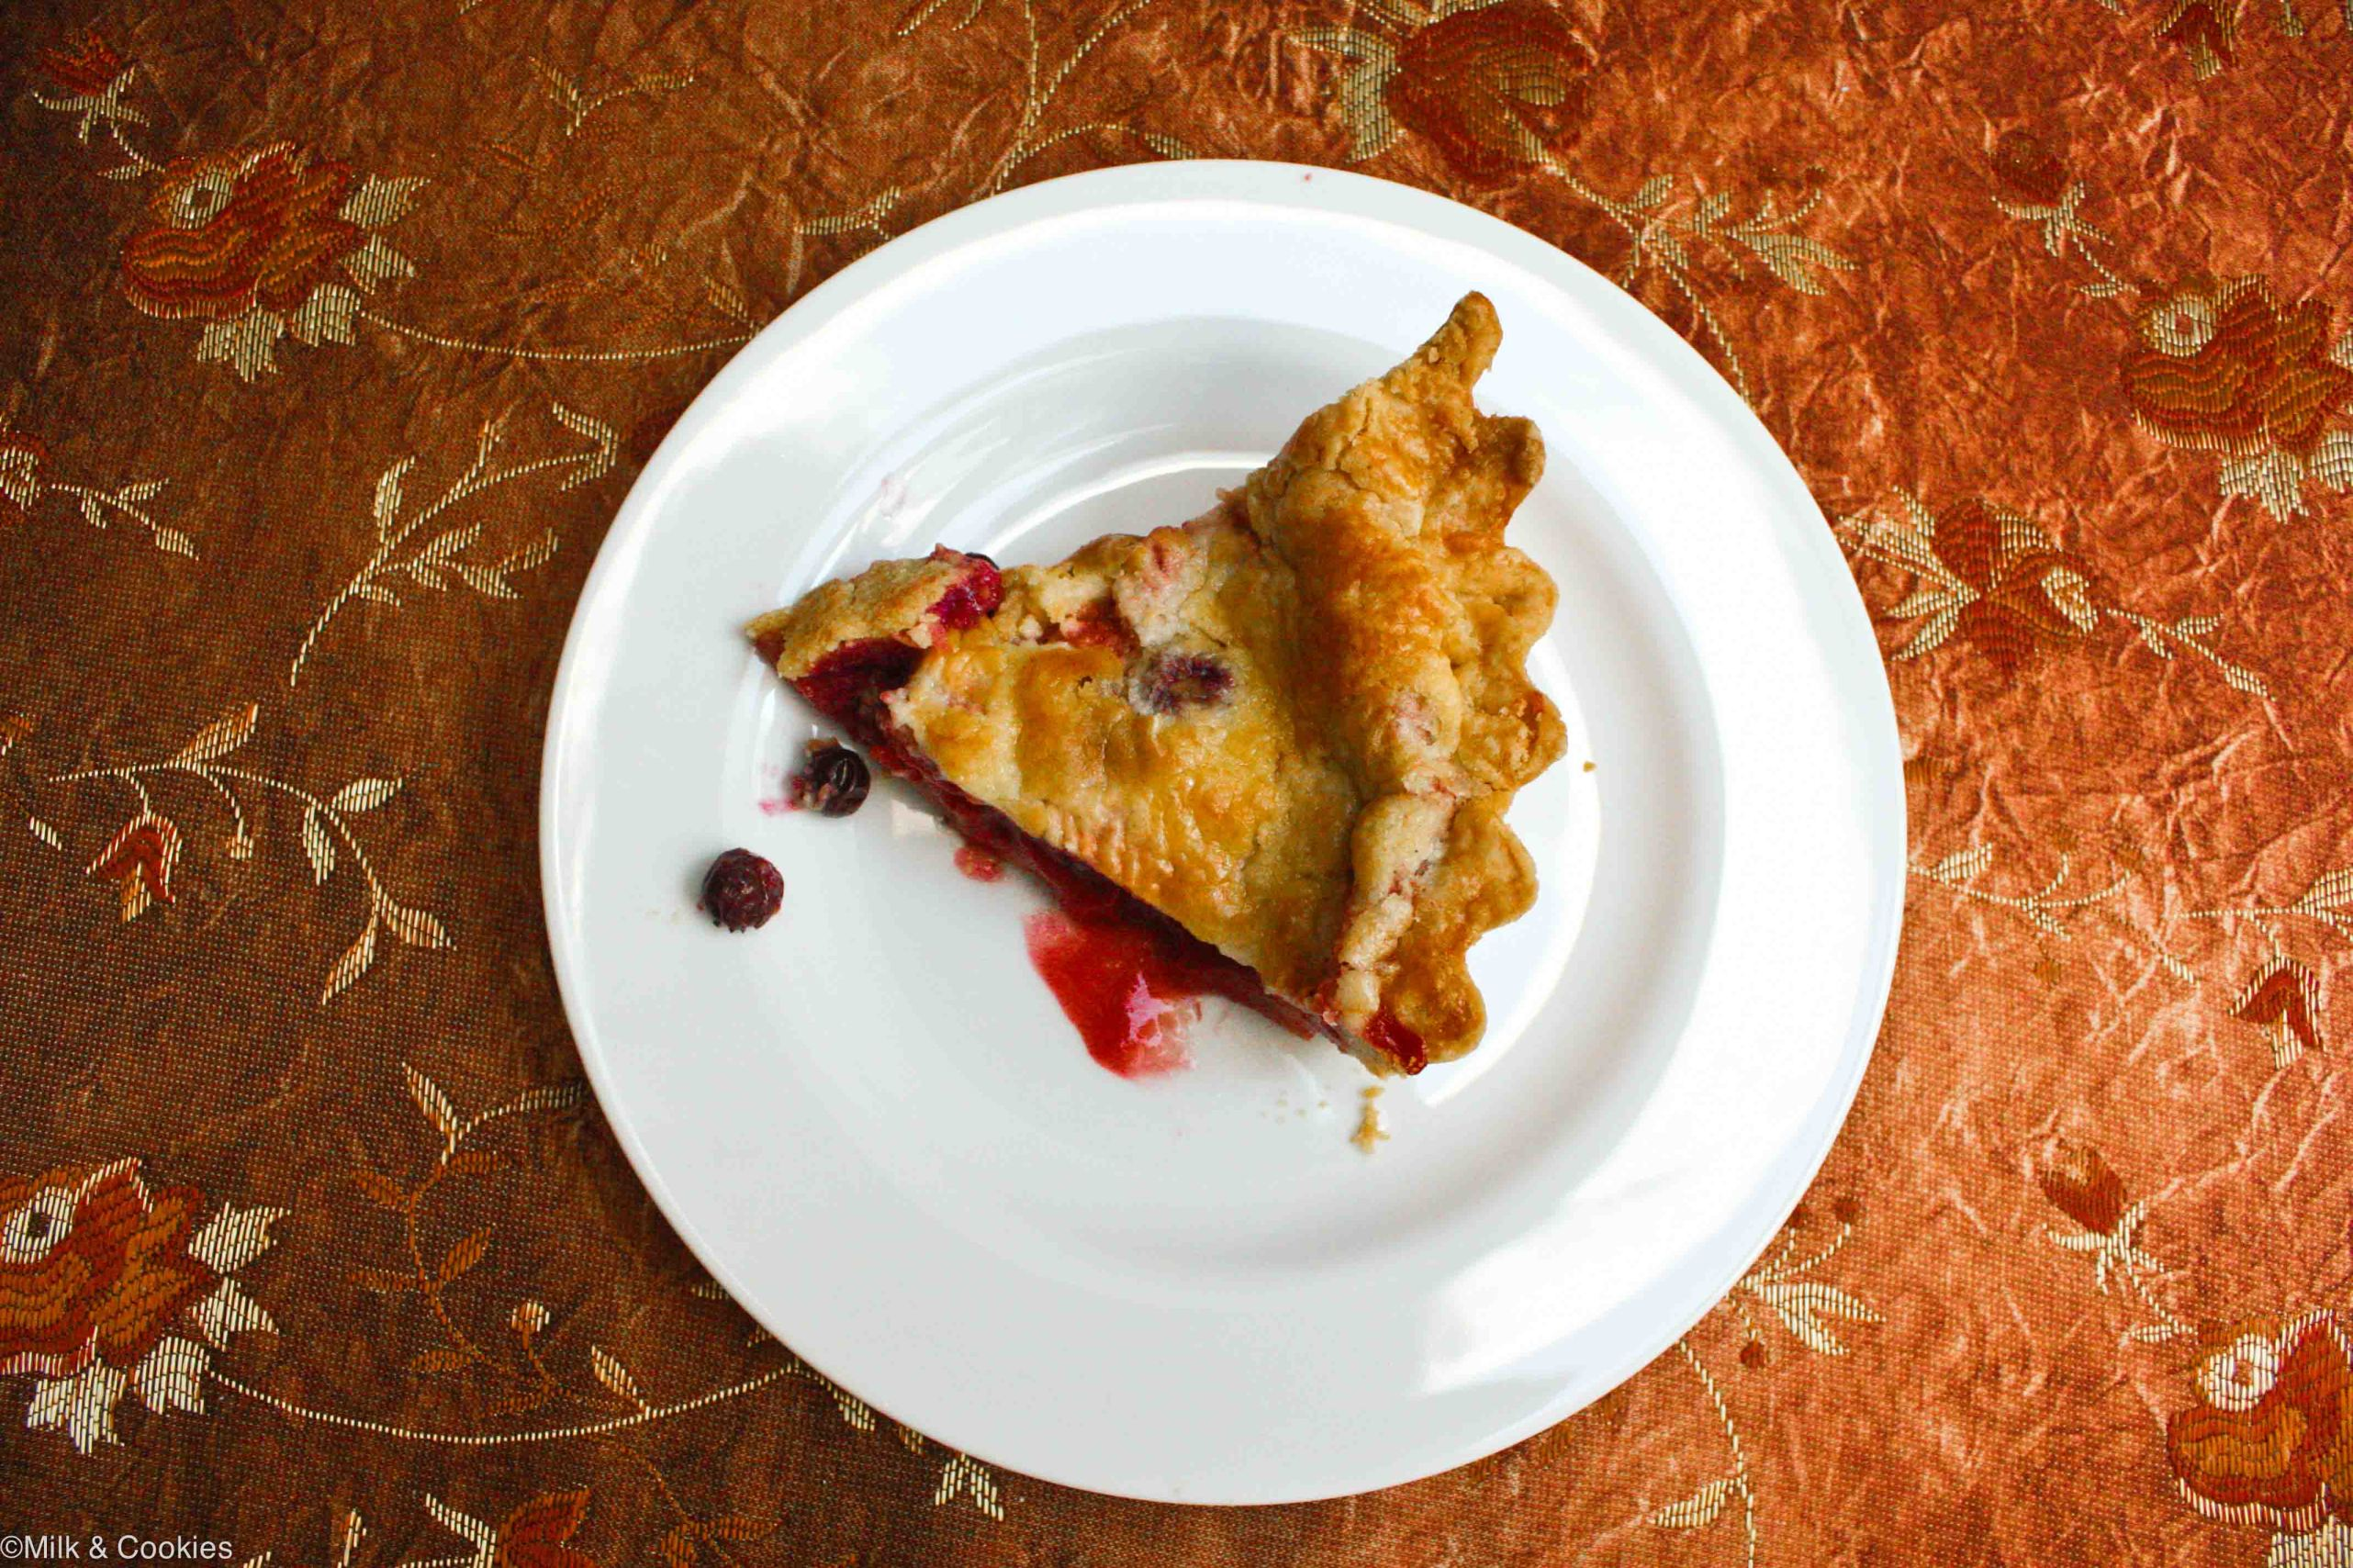 Blueberry and strawberry pie recipe   Milk and Cookies